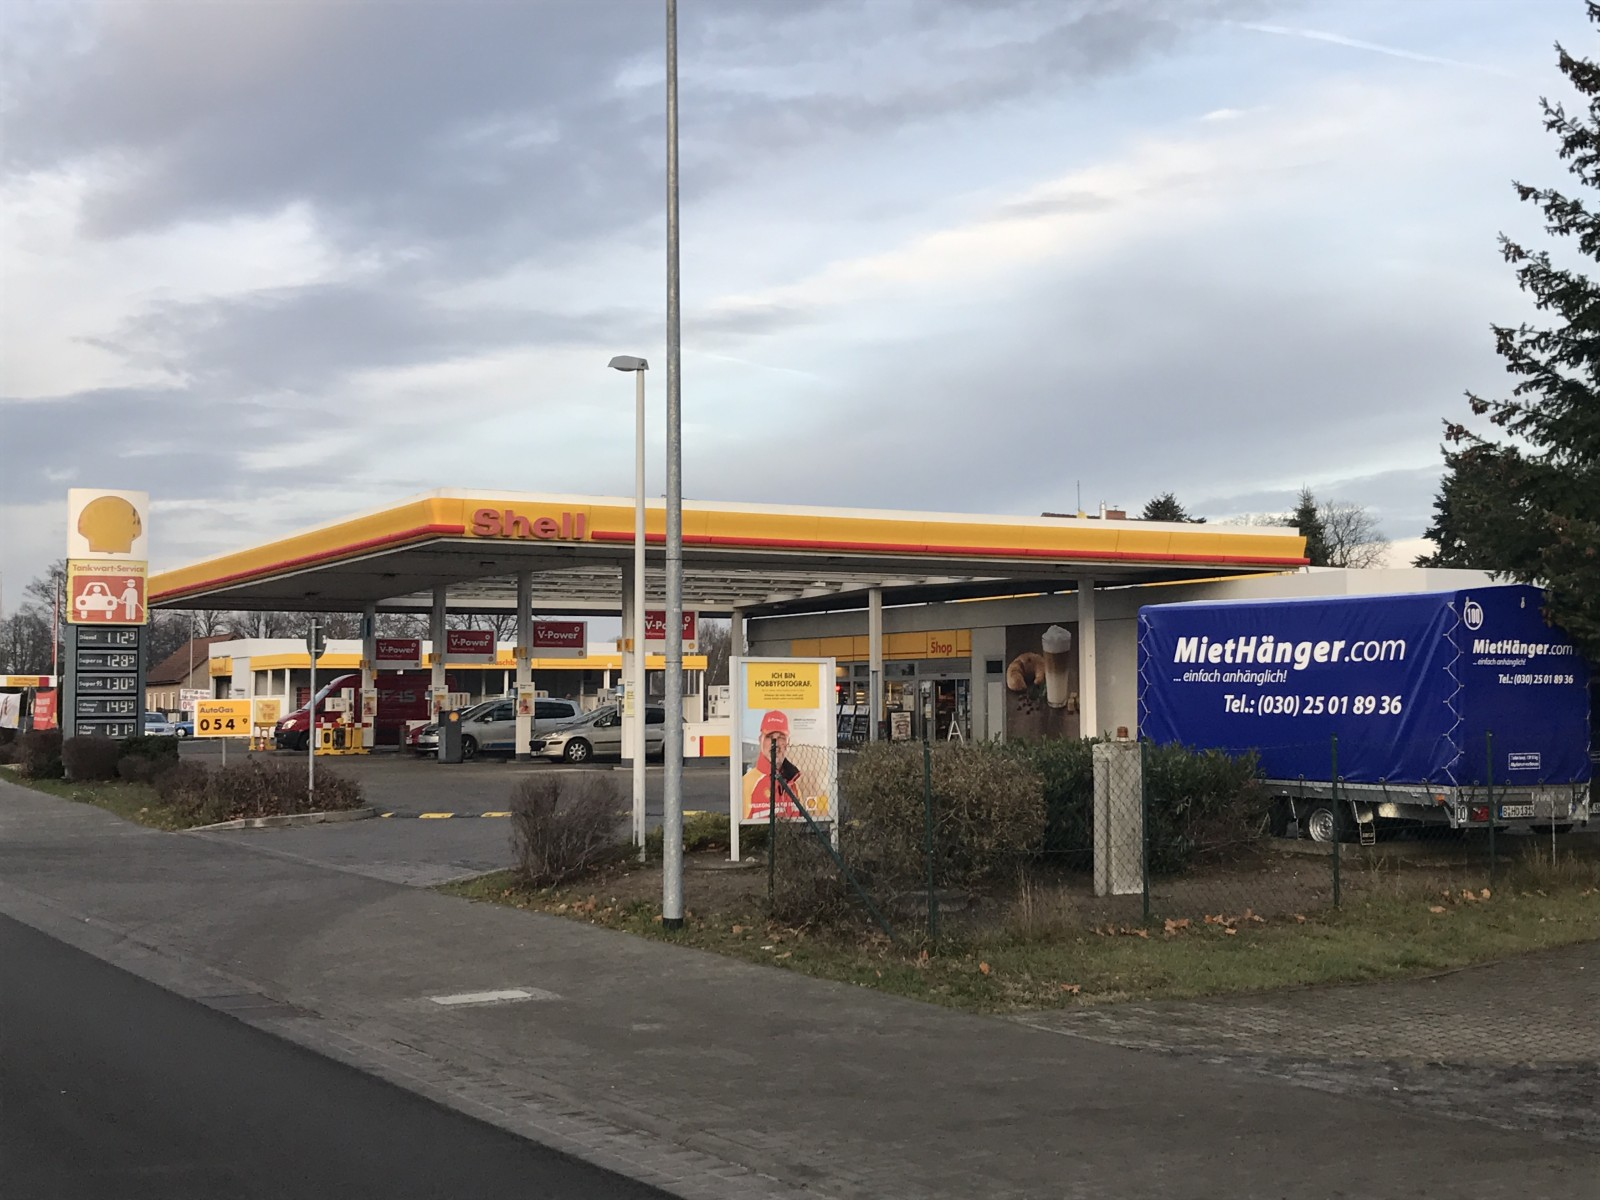 anh nger mieten station shell tankstelle f rstenwalde. Black Bedroom Furniture Sets. Home Design Ideas